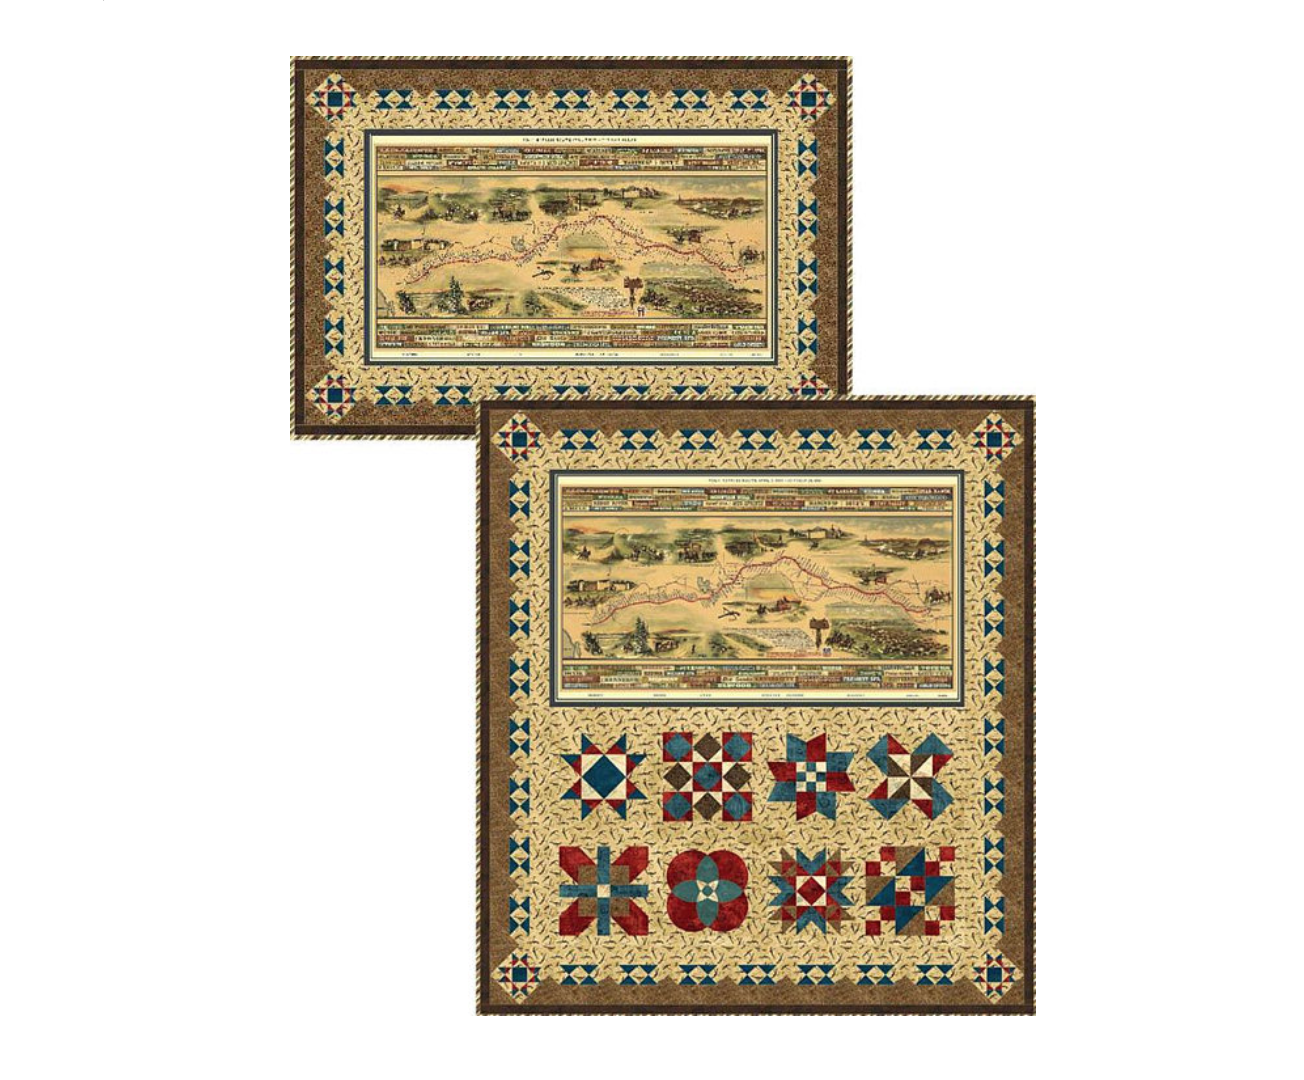 Western Journeys/Pony Express Wall Hanging